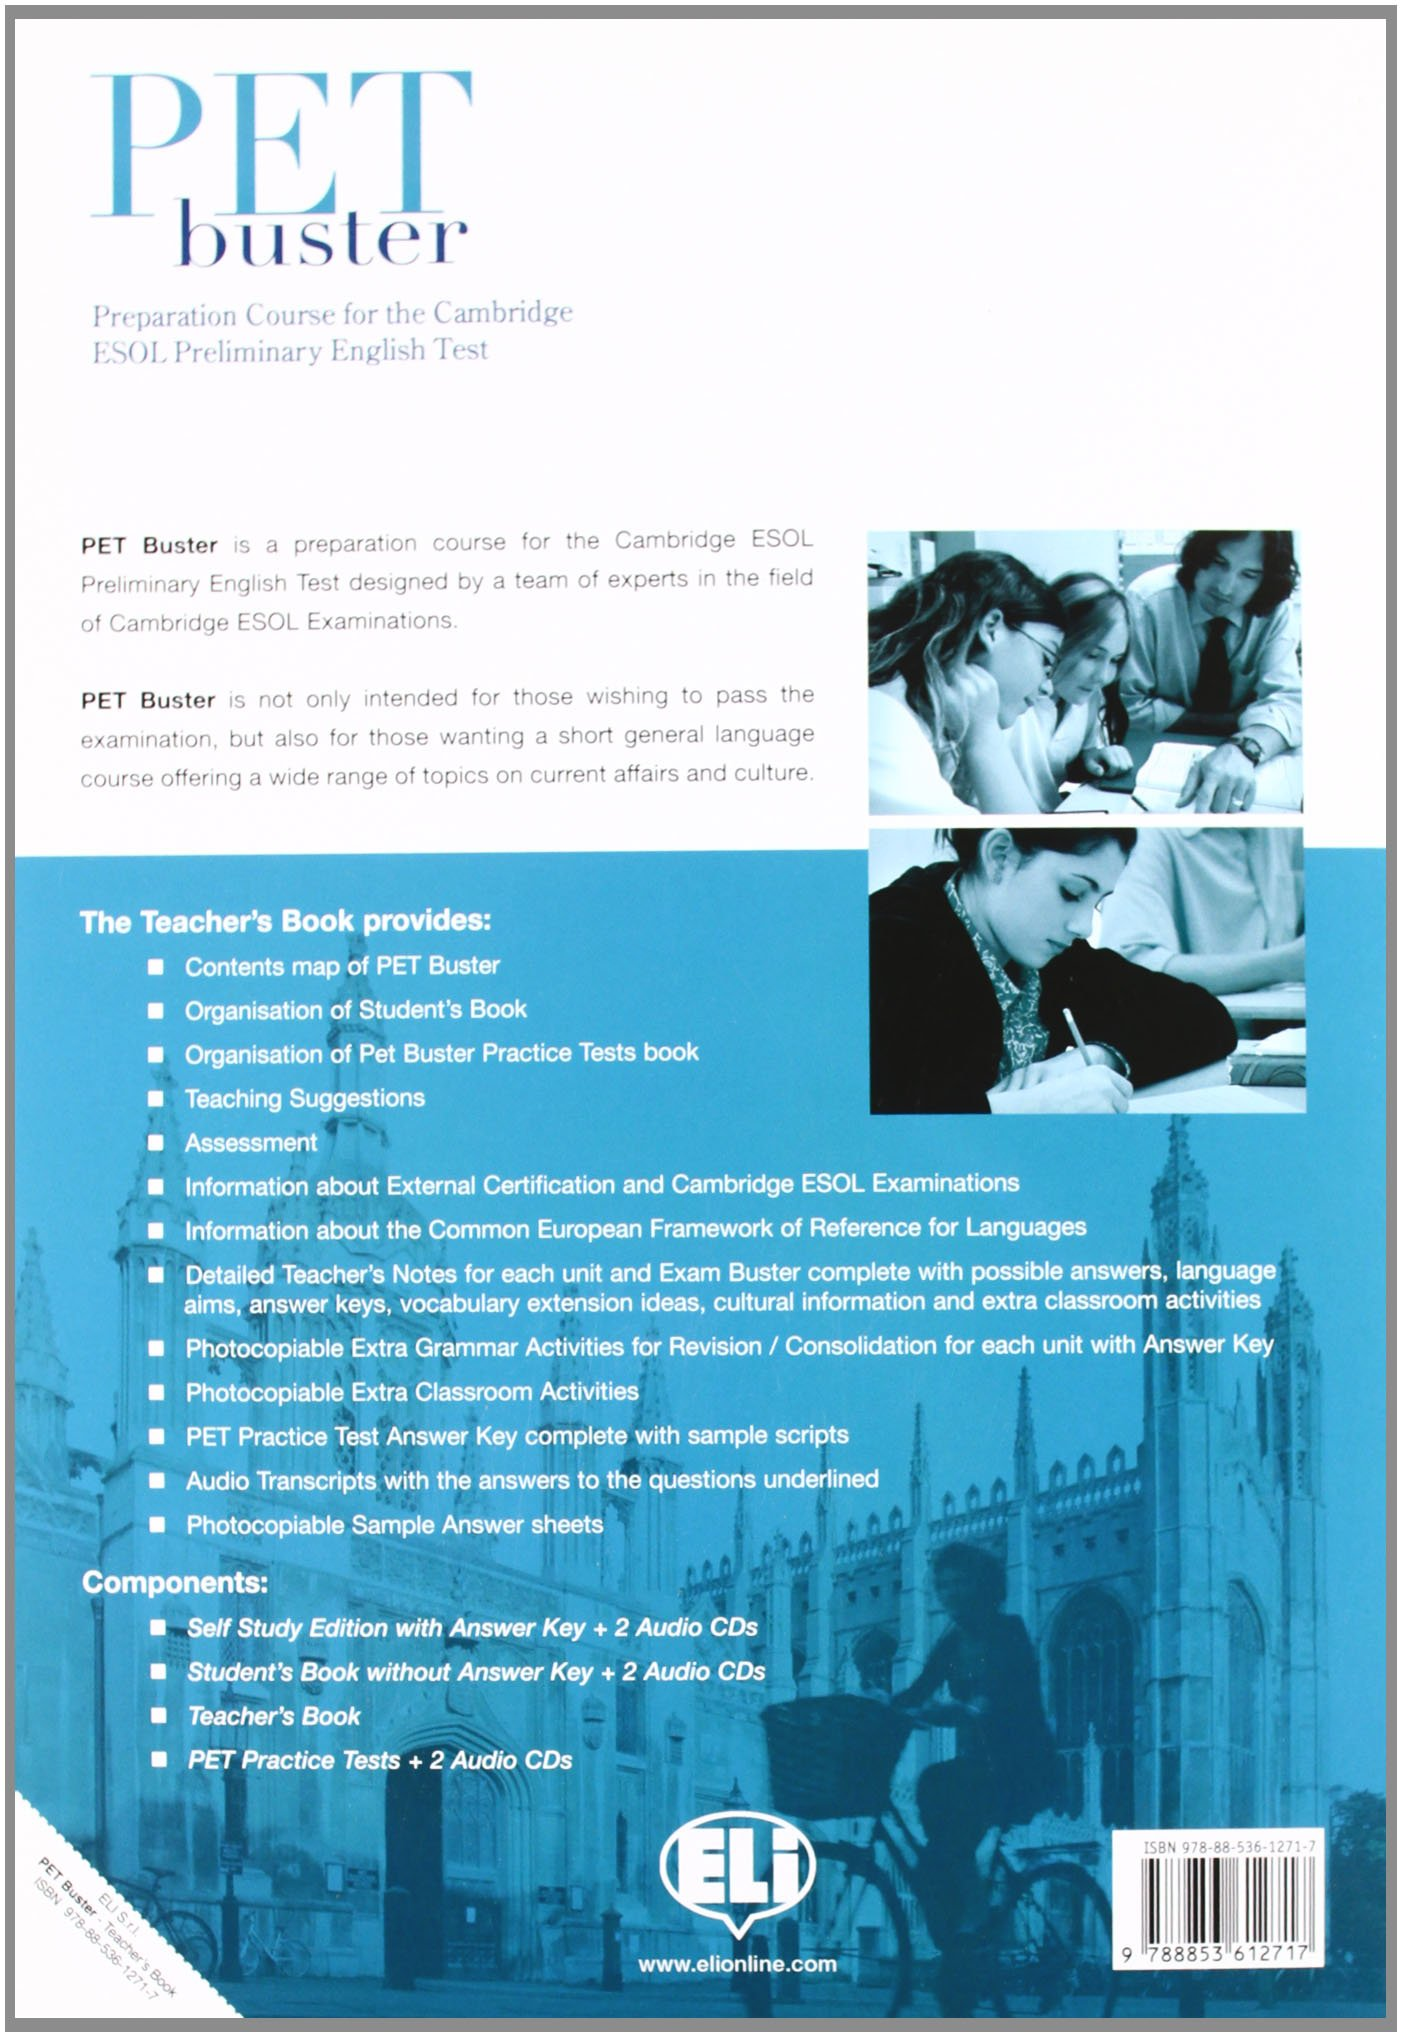 PRELIMINARY ENGLISH TEST STUDENTS BOOK PDF - Download NOW!